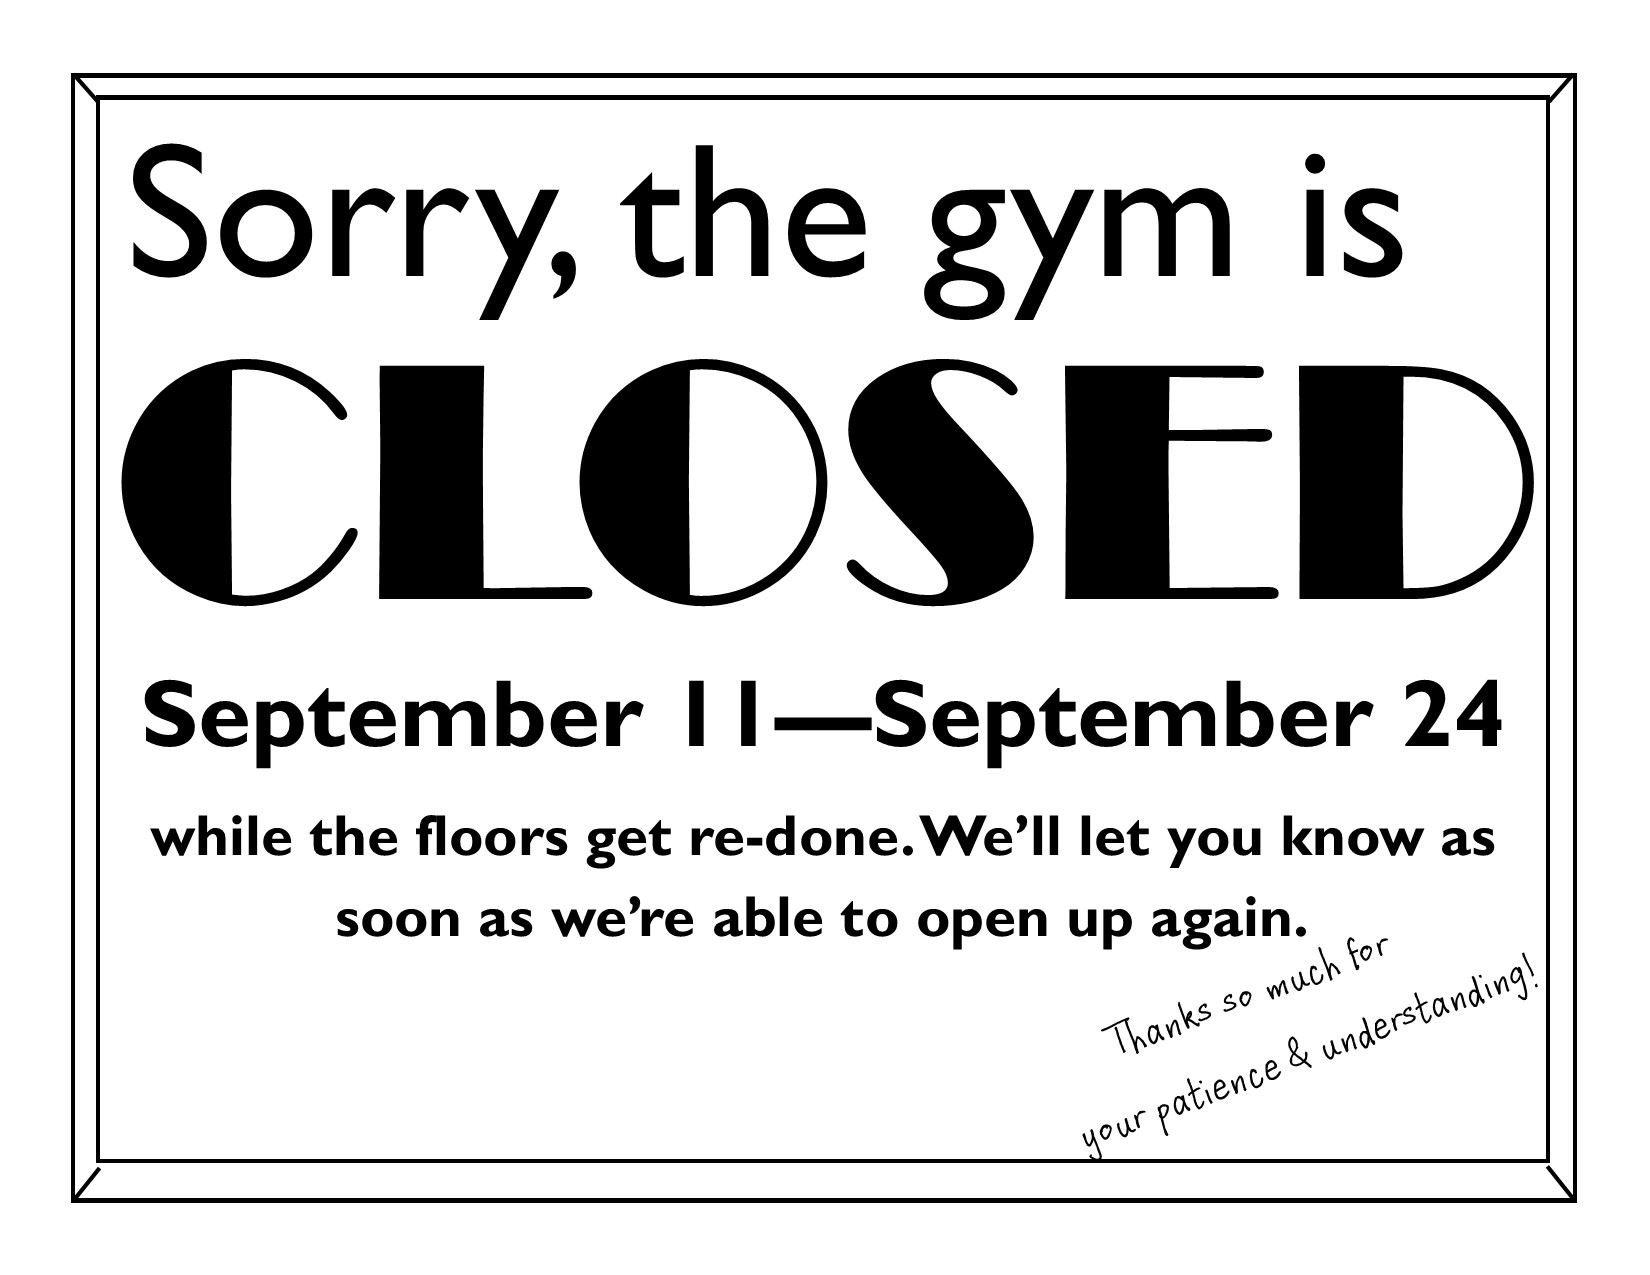 gym is closed